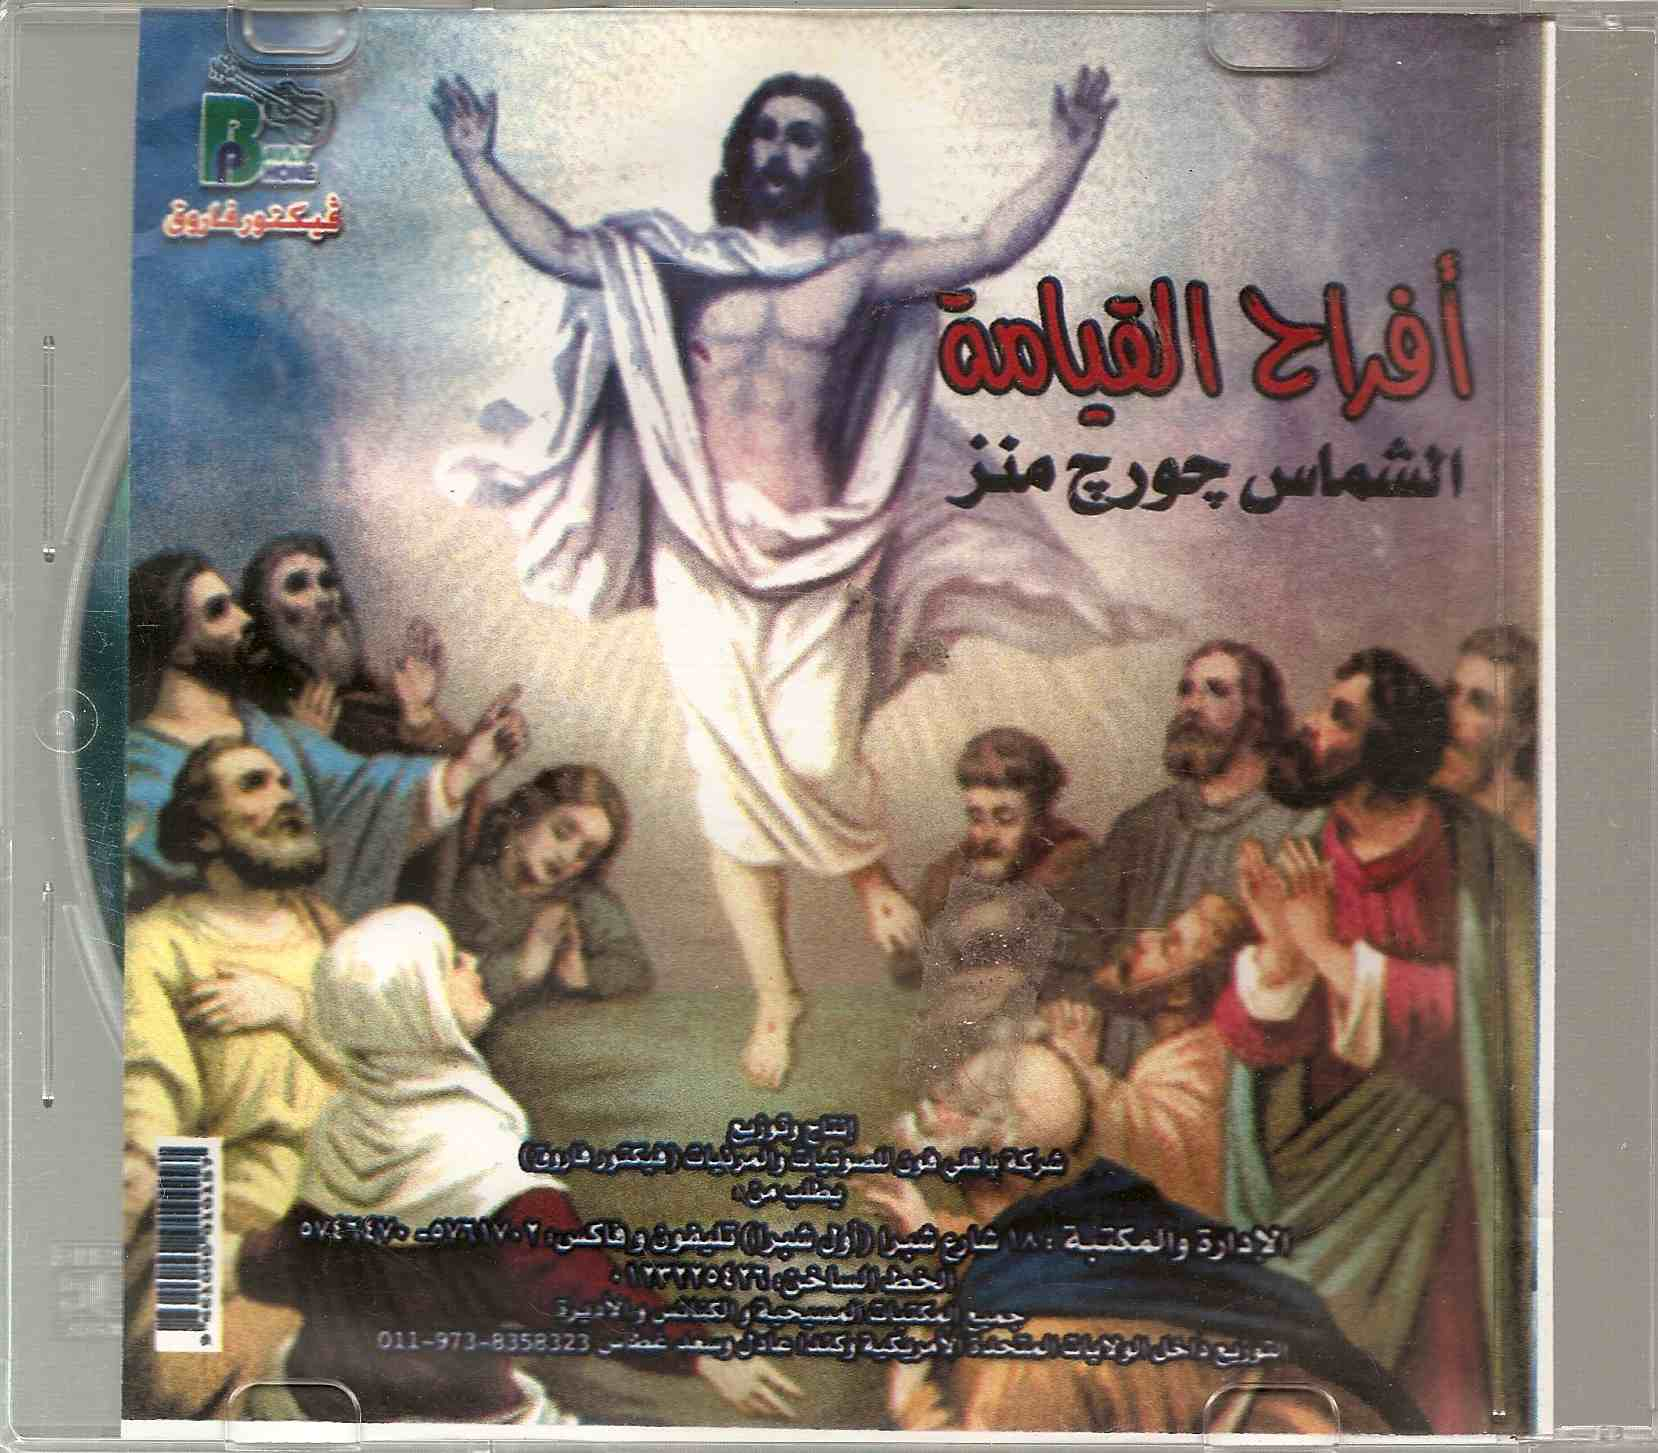 "Arabic Worship On cd ""Be Happy, the Resurrection"" By George Menz"